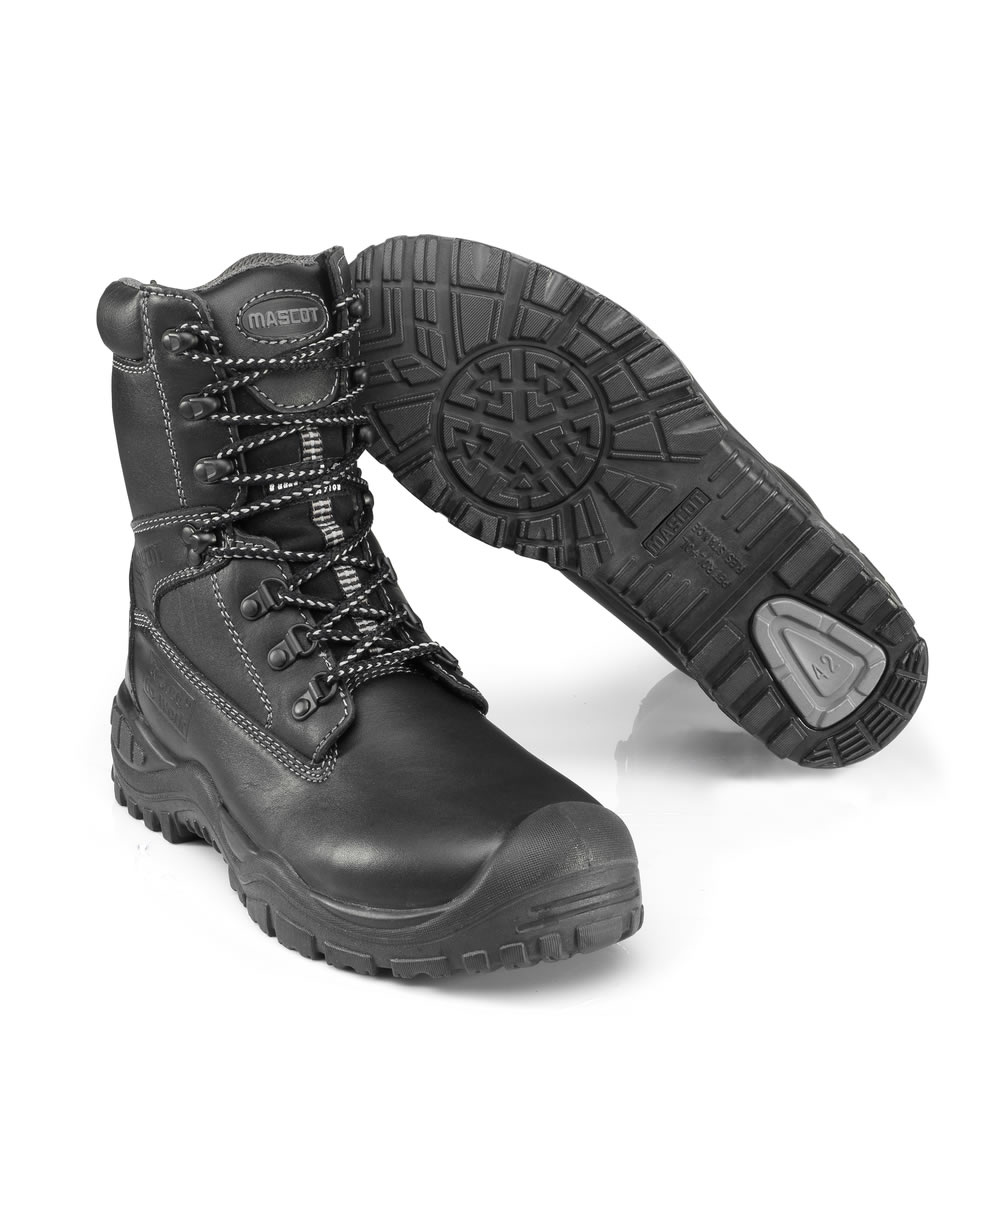 MASCOT CRAIG SAFETY RANGER BOOT S3